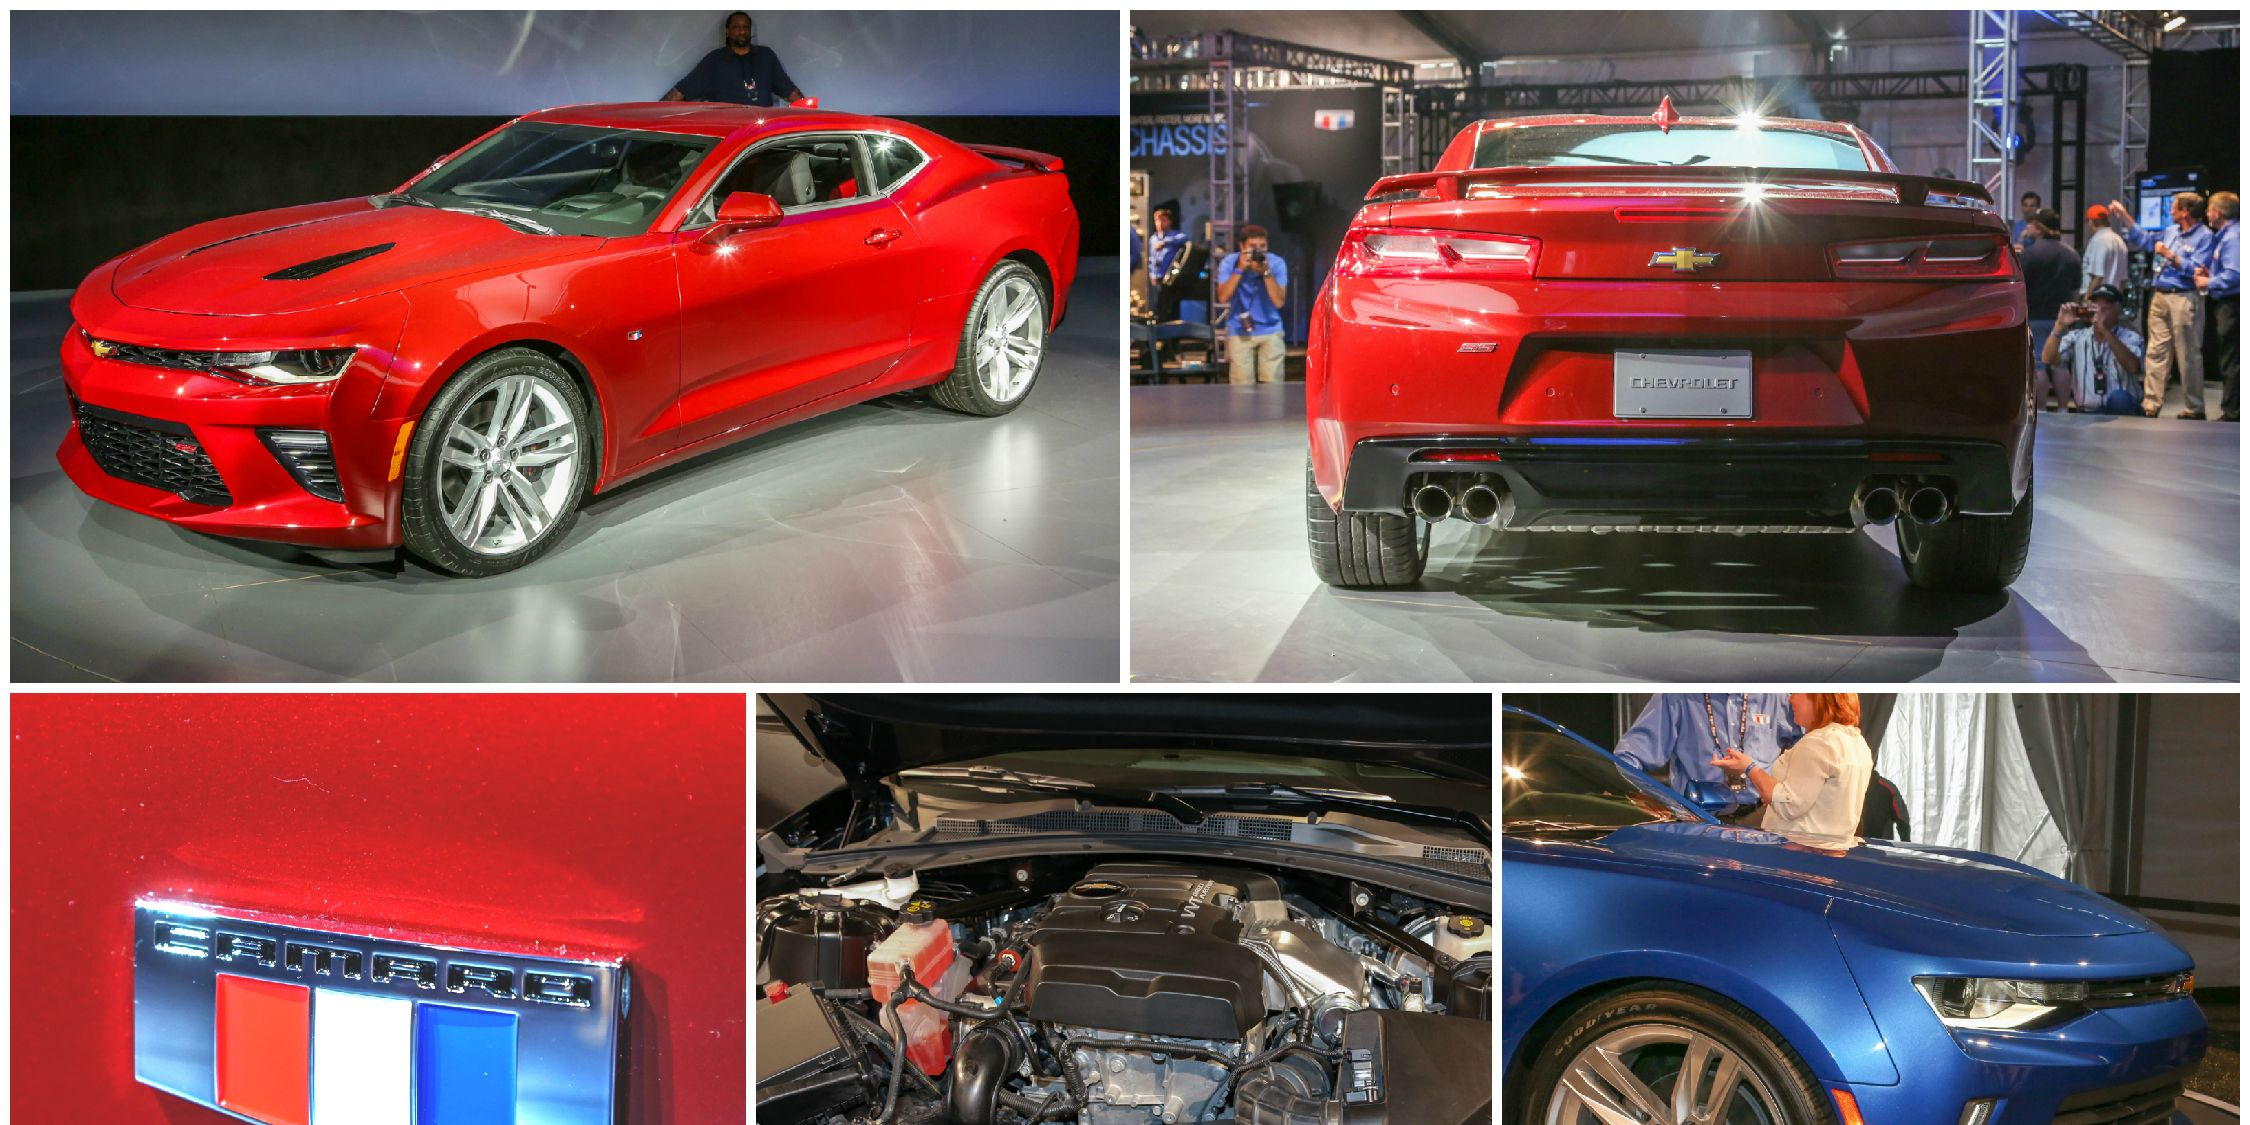 2016 Chevrolet Camaro Up Close and Personal, Live from the Reveal!